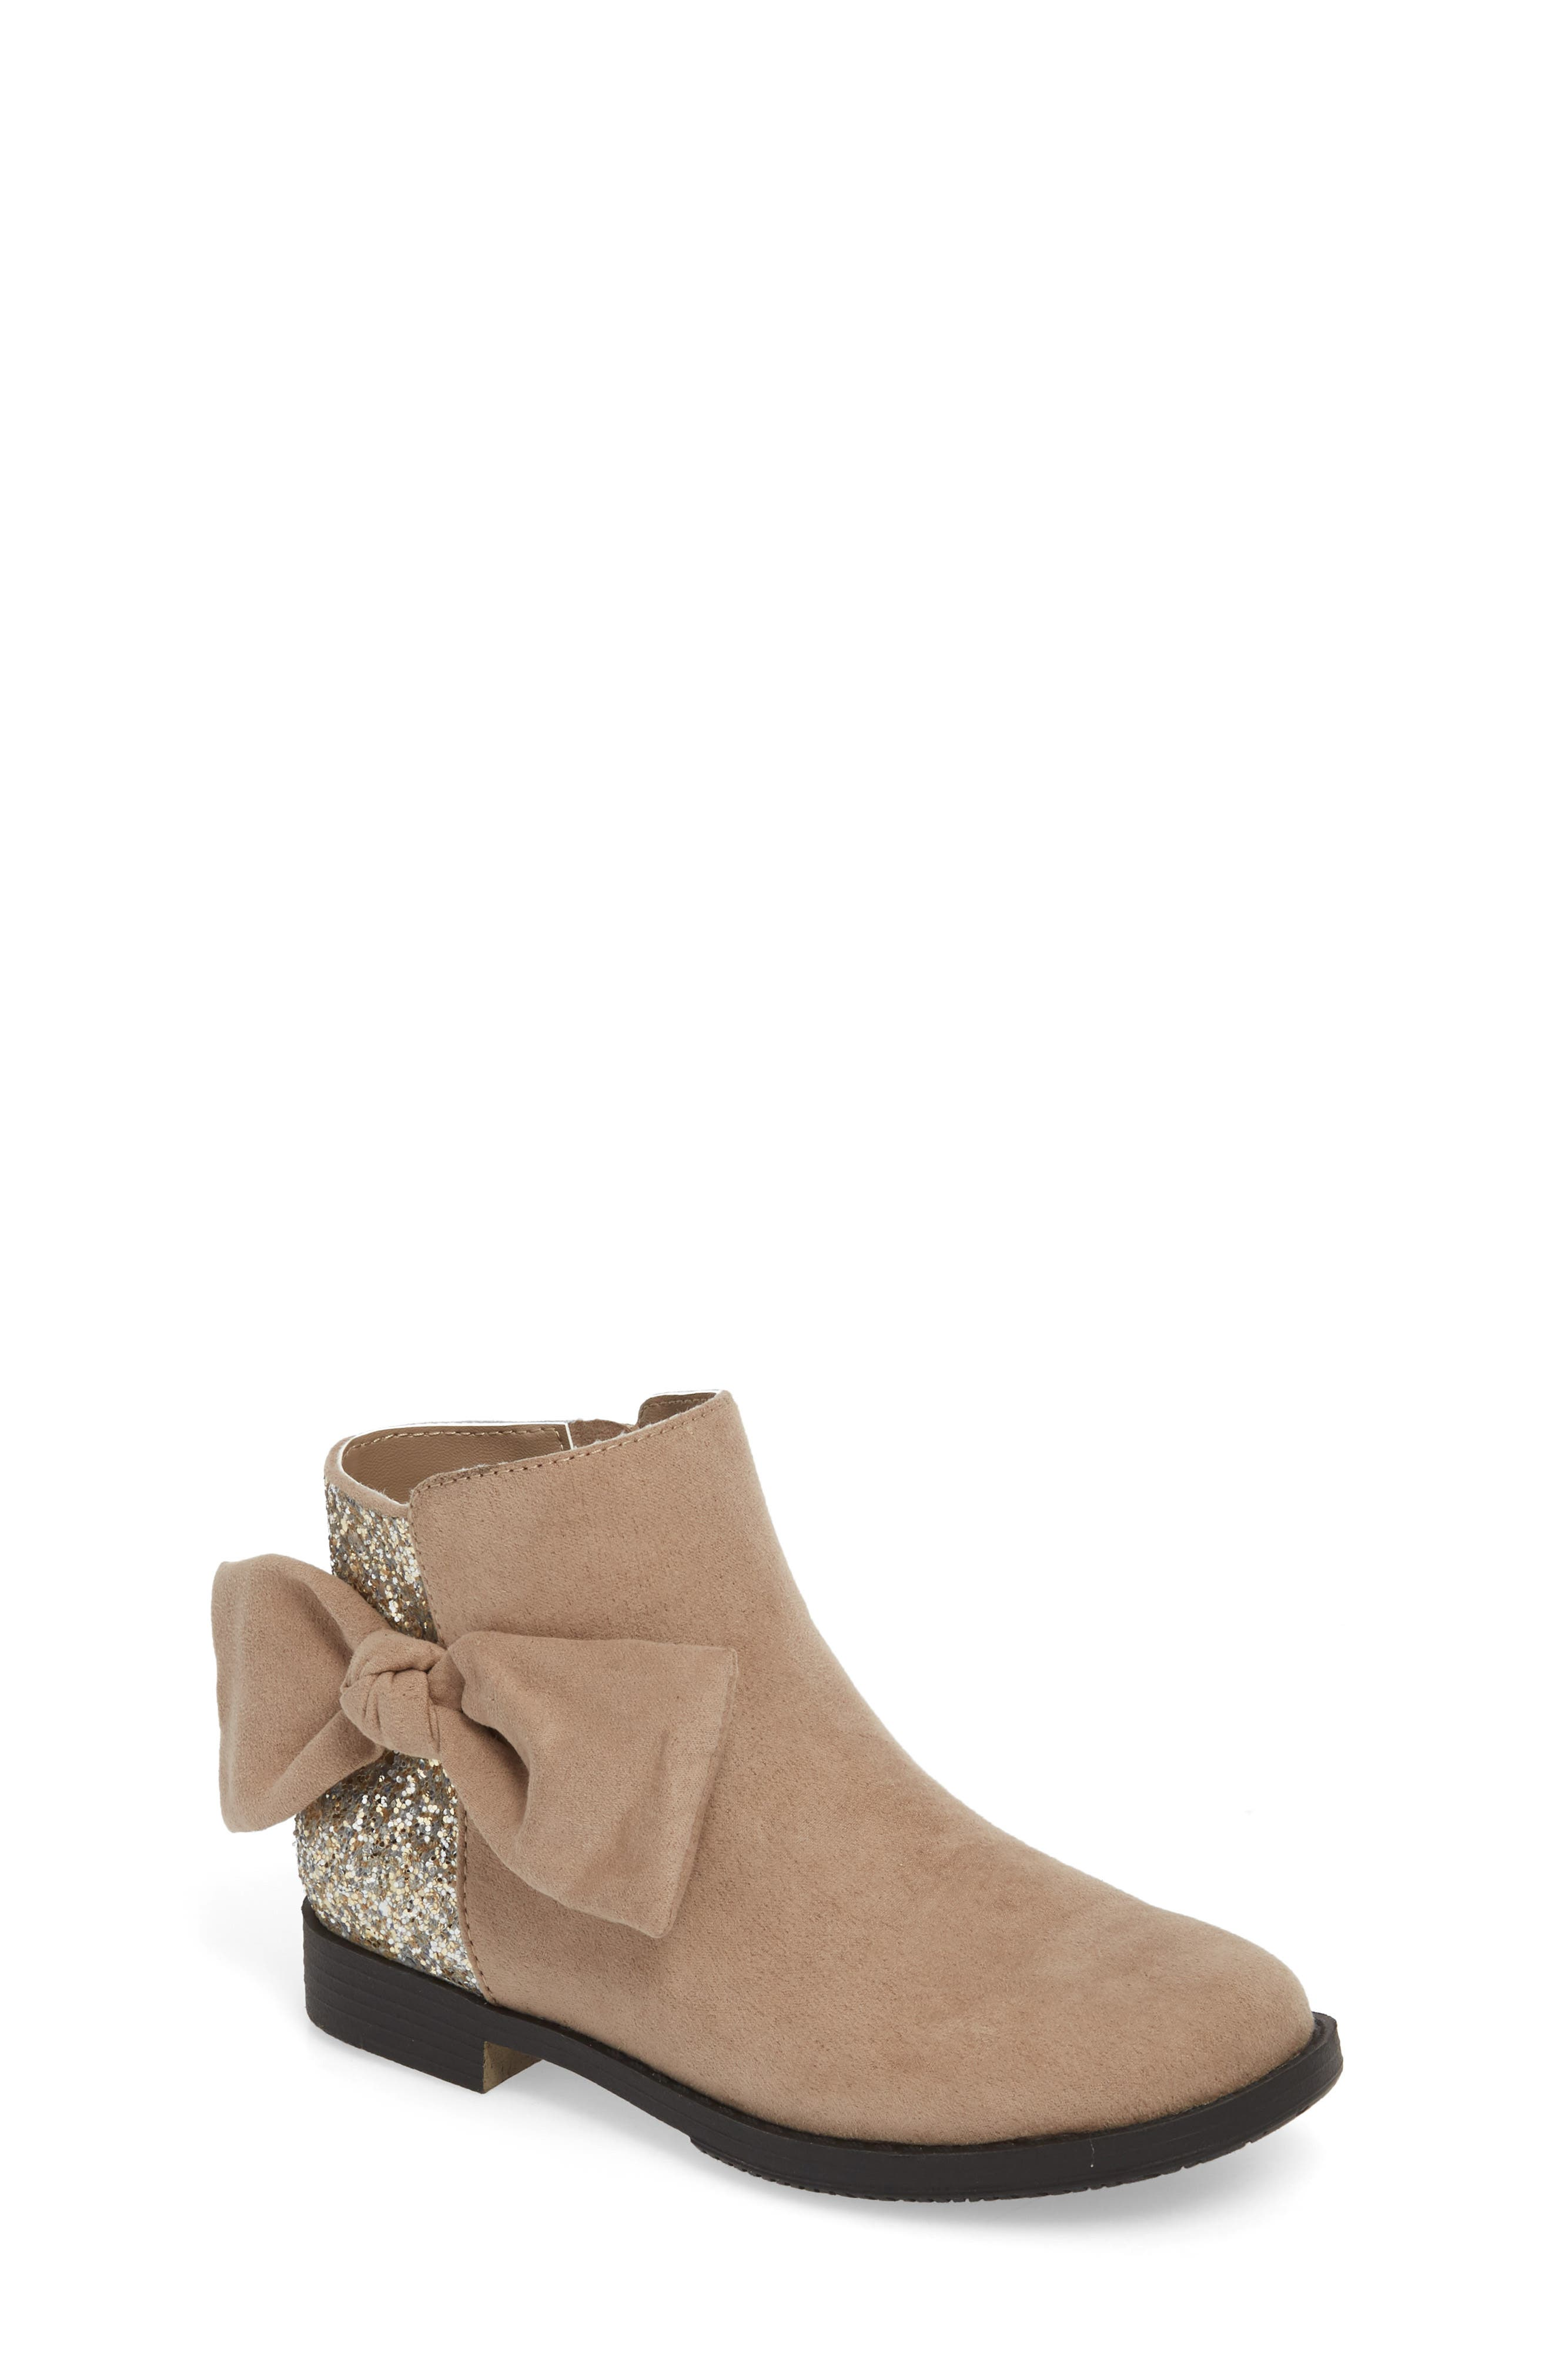 Kenneth Cole Collection Glittery Kennedy Tie Bootie,                             Main thumbnail 1, color,                             TAUPE